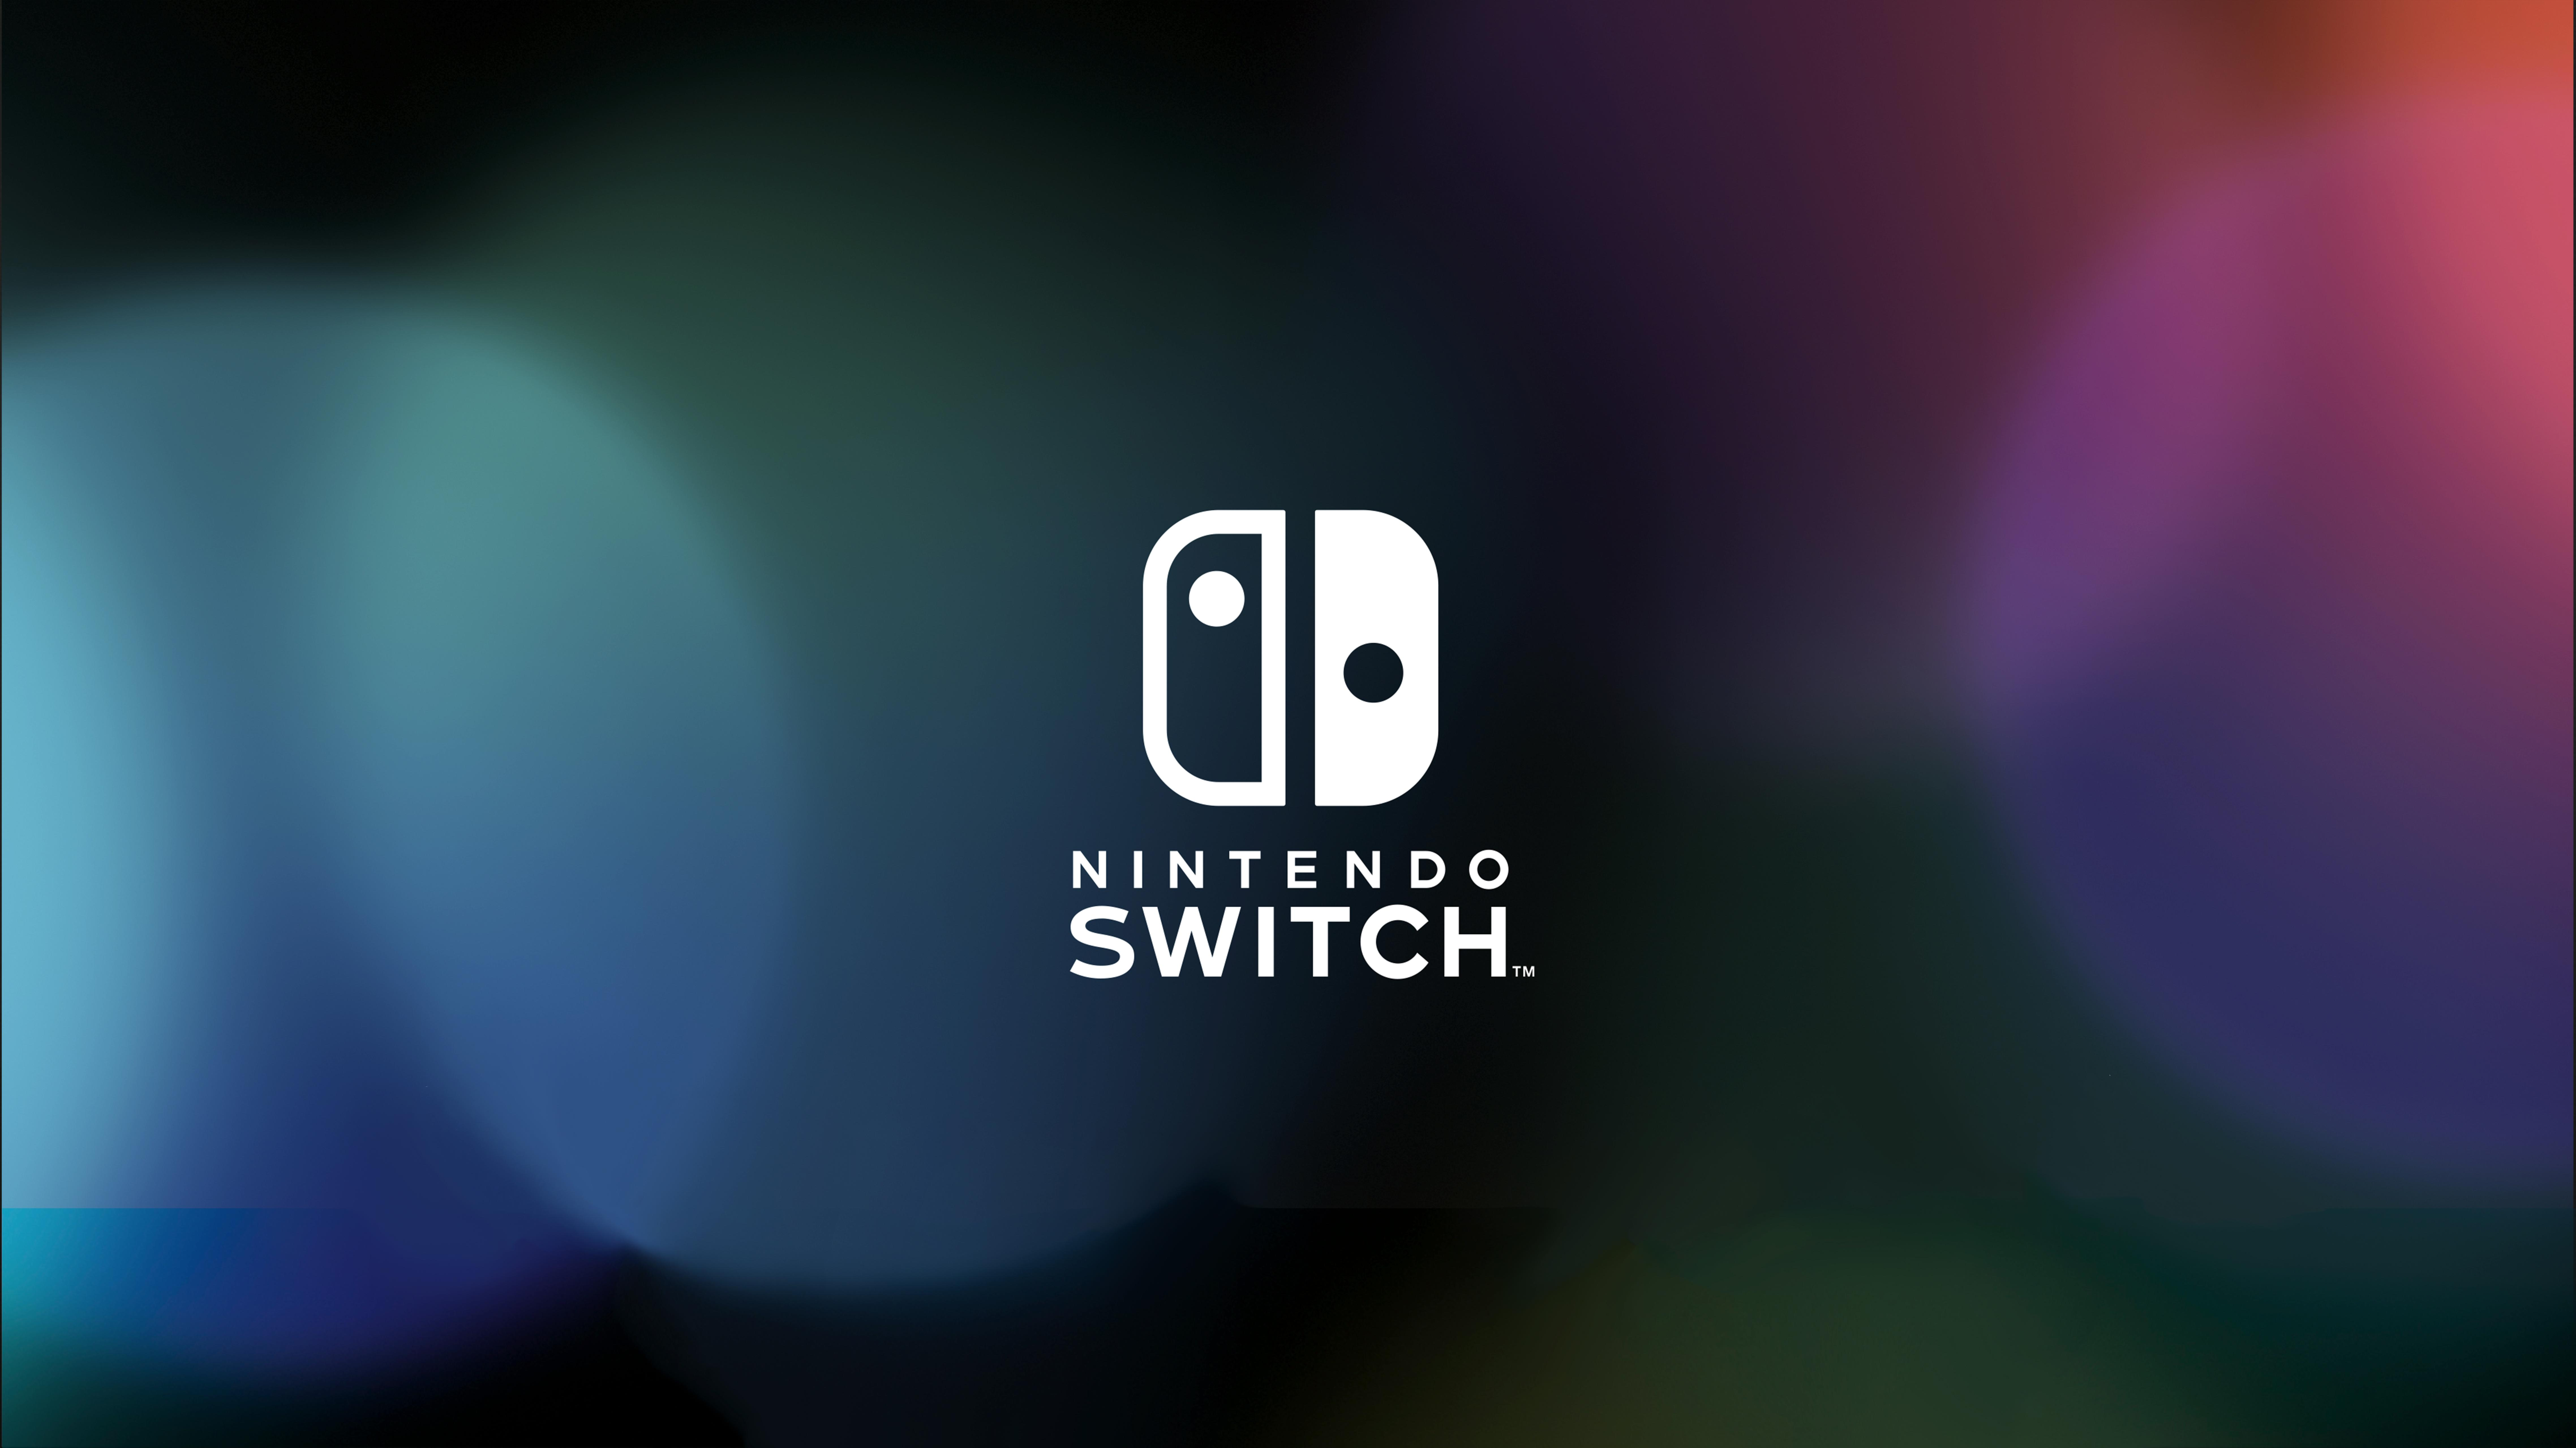 Nintendo Switch wallpaper High Definition  NintendoSwitch